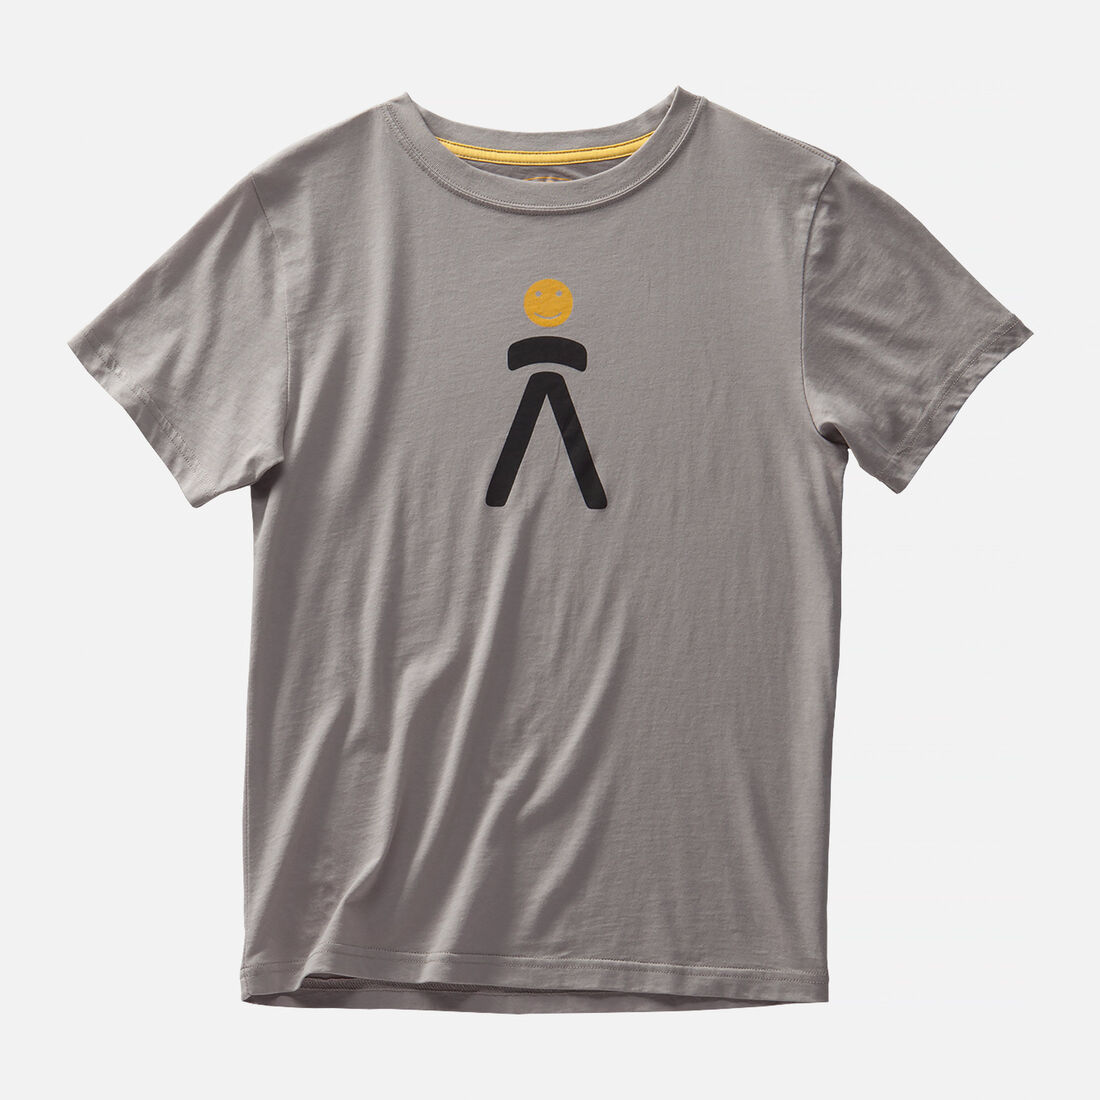 Big Kids' Glisan Graphic Tee in Keen Man/Drizzle - large view.